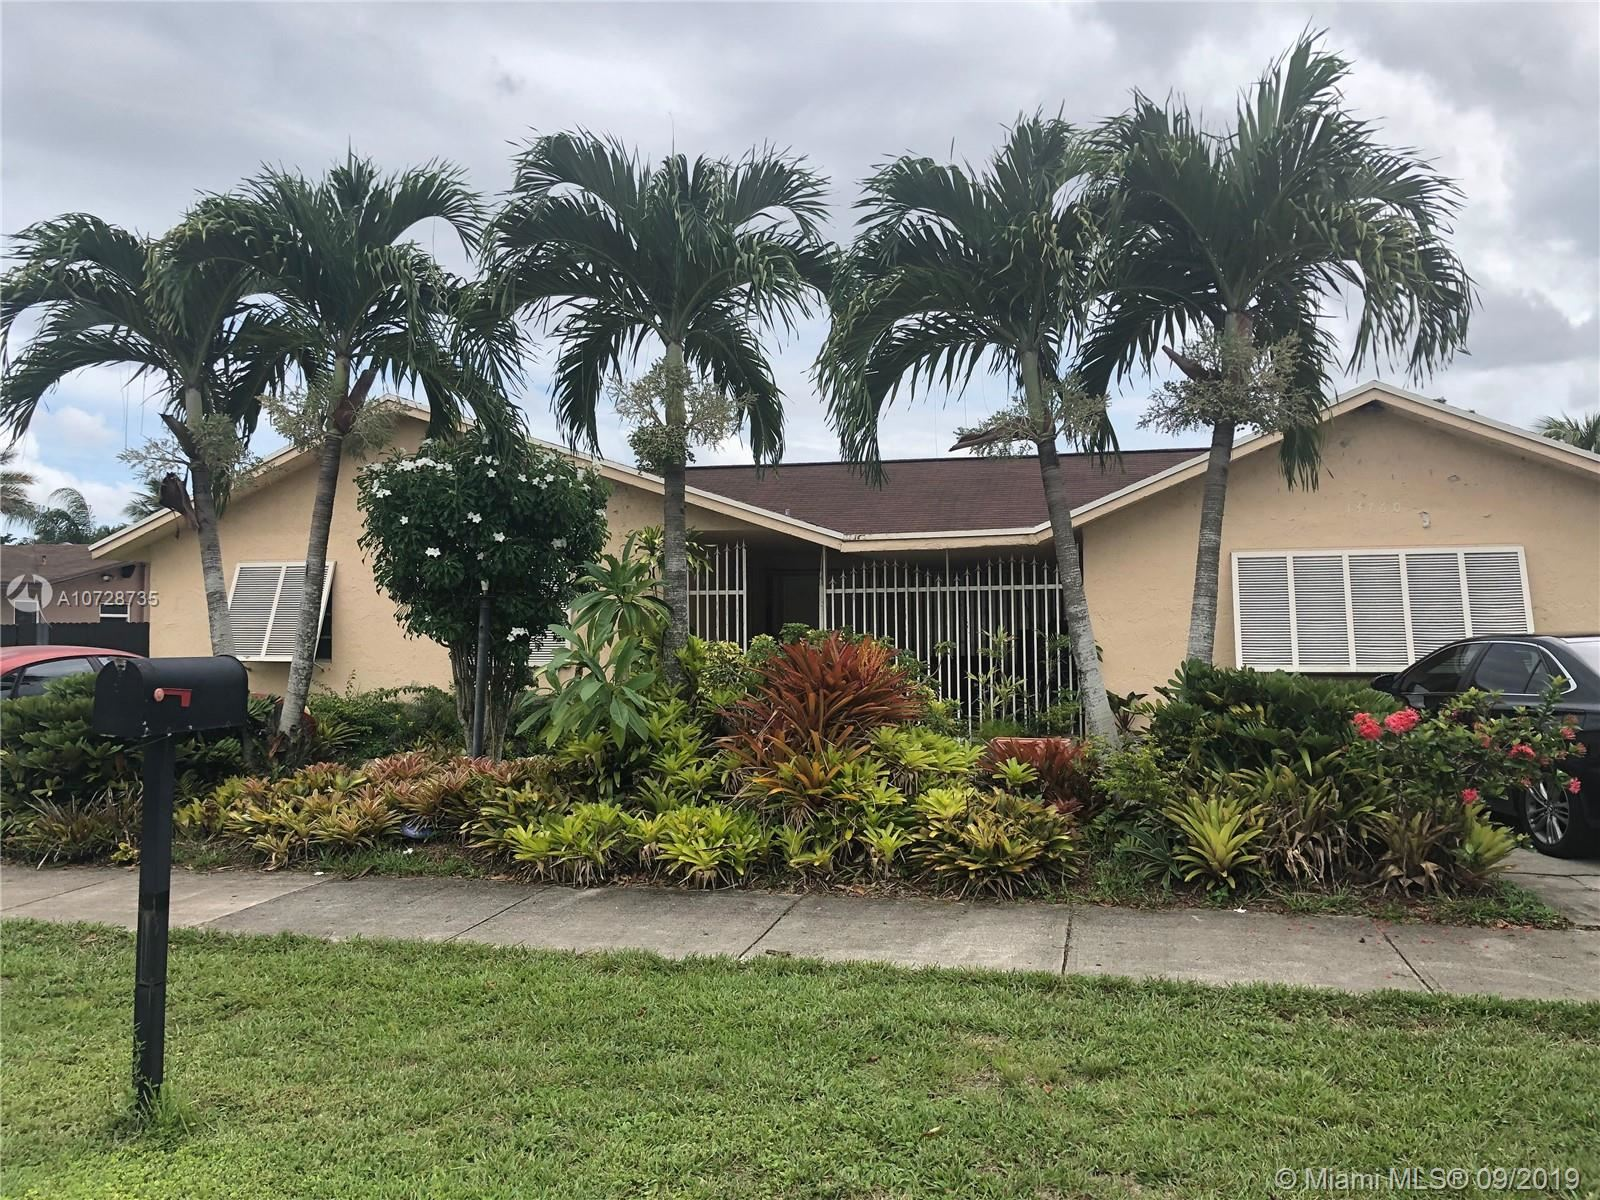 Photo 1 of Listing MLS a10728735 in 14760 SW 77th St Miami FL 33193